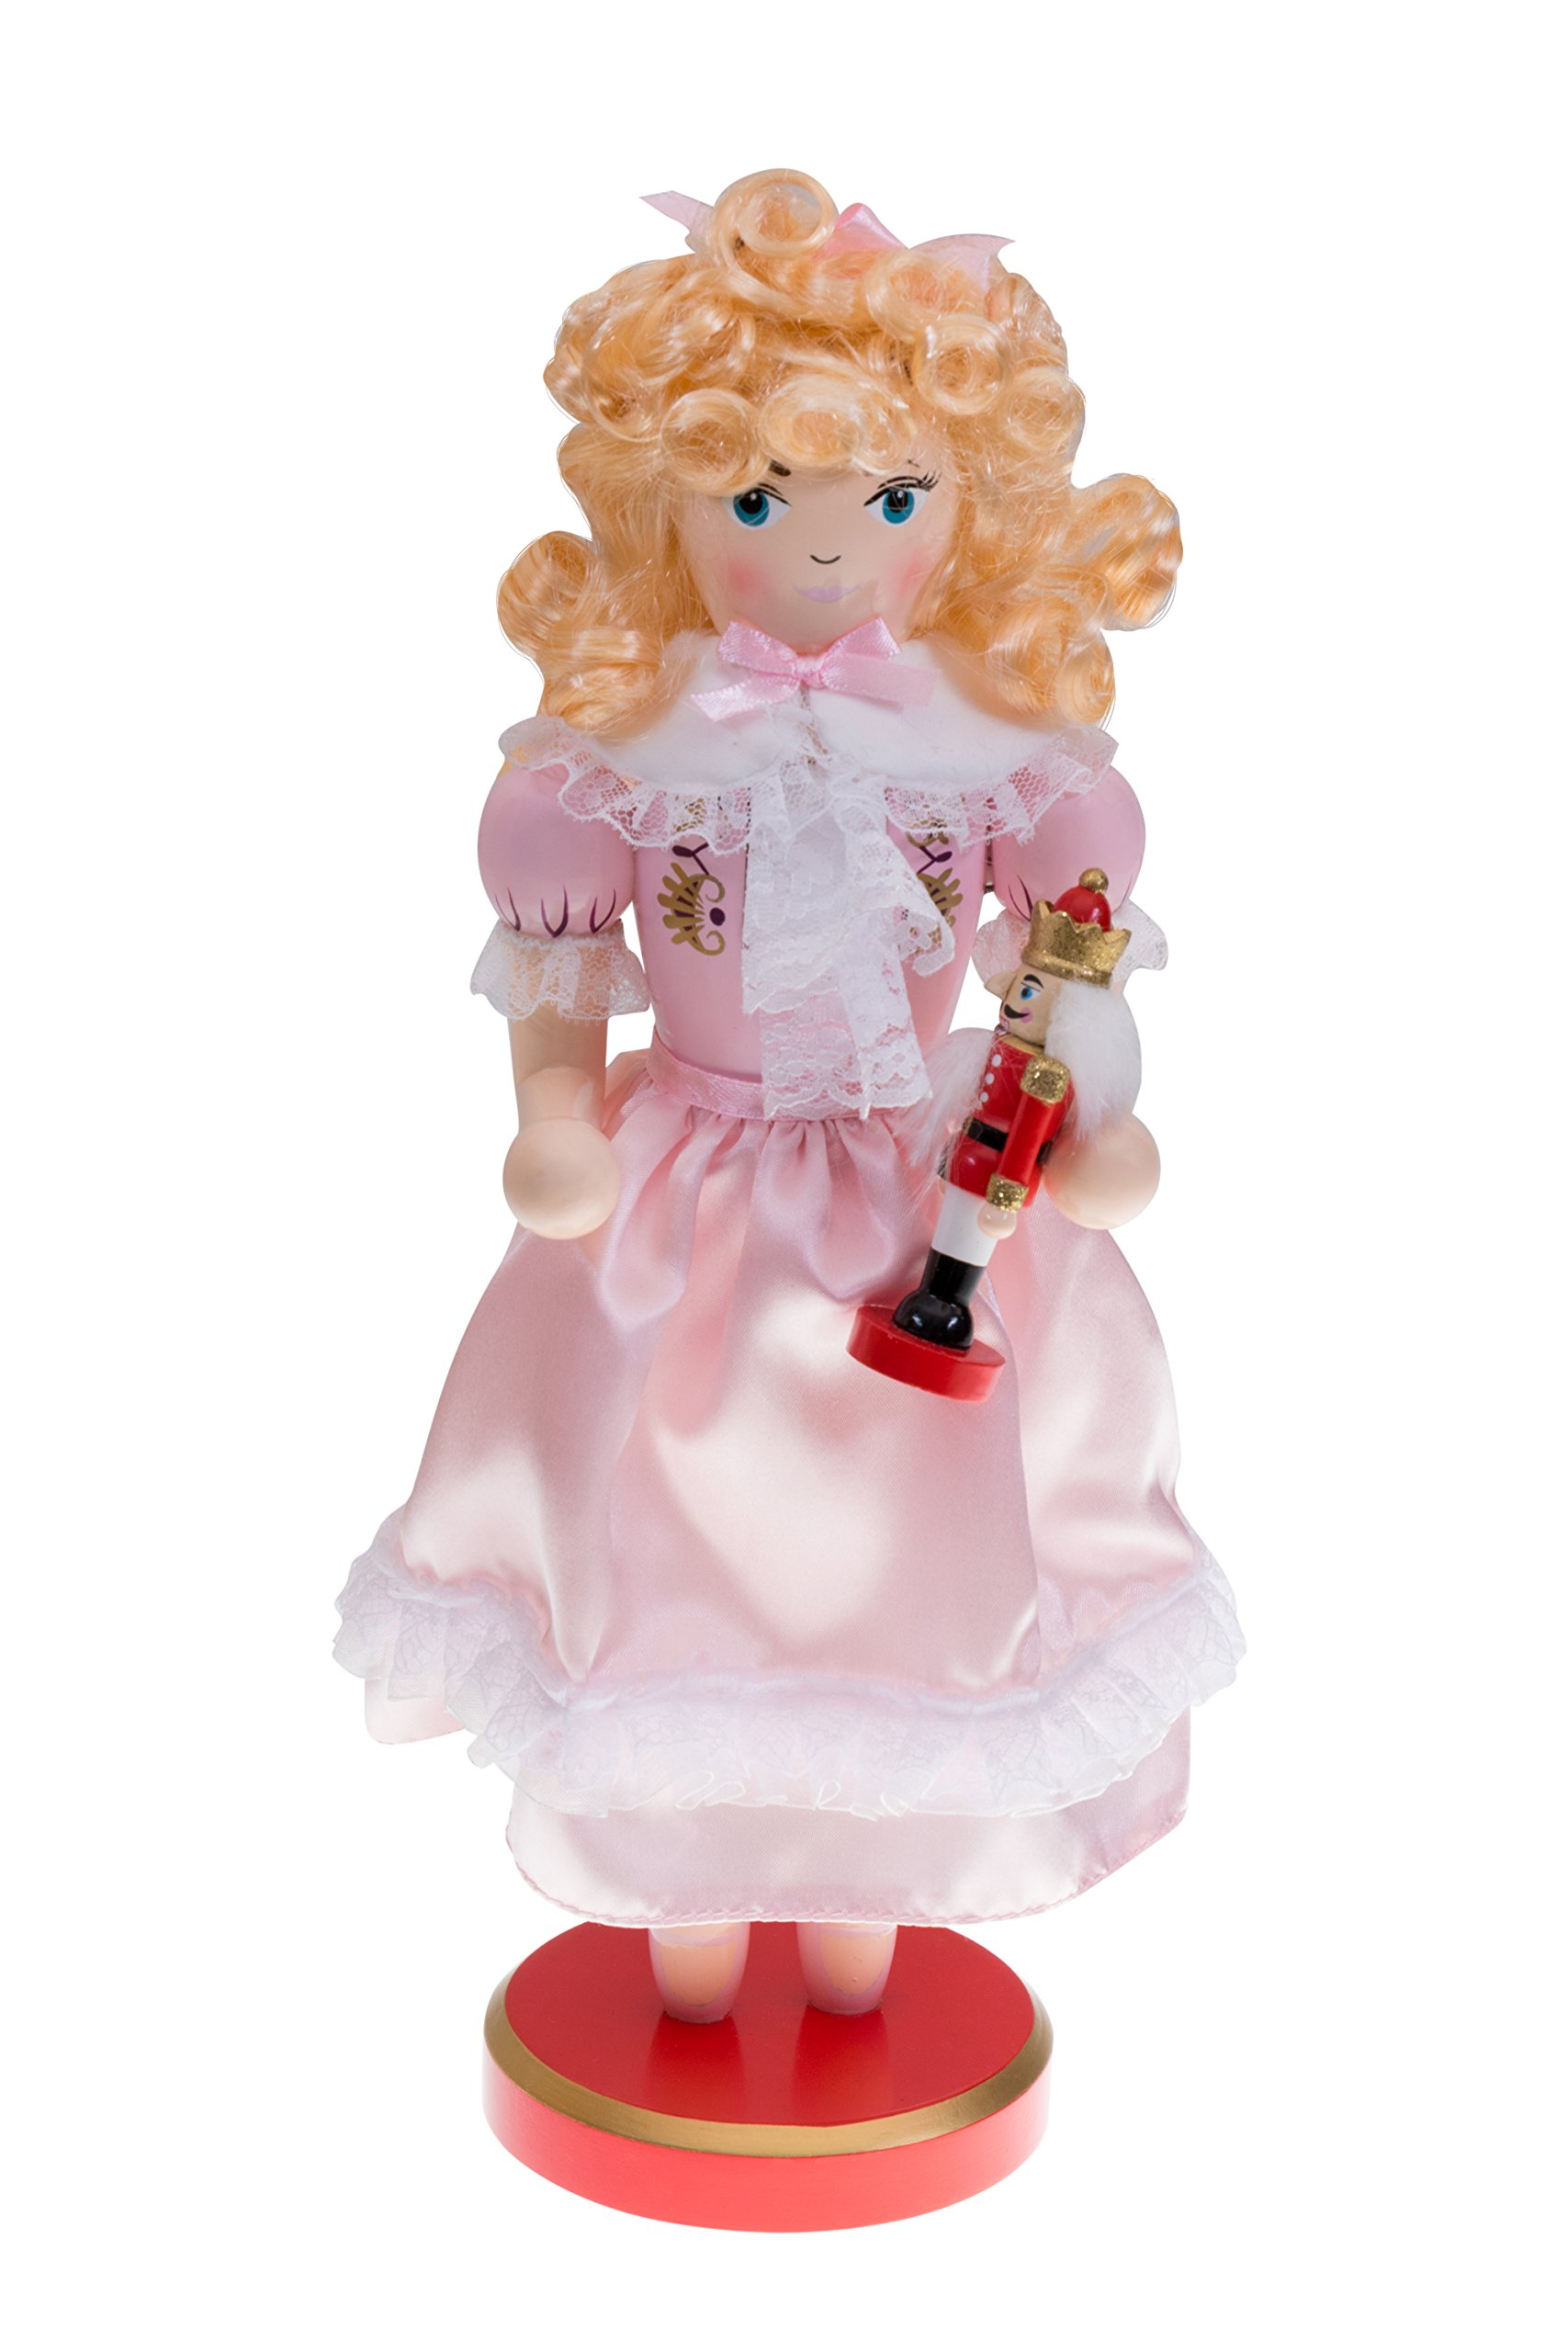 Pink Princess Clara Nutcracker Suite by Clever Creations | Holding Small Christmas Nutcracker | Festive Christmas Decor | Unique Addition to Any Collection | 100% Wood | 14'' Tall…